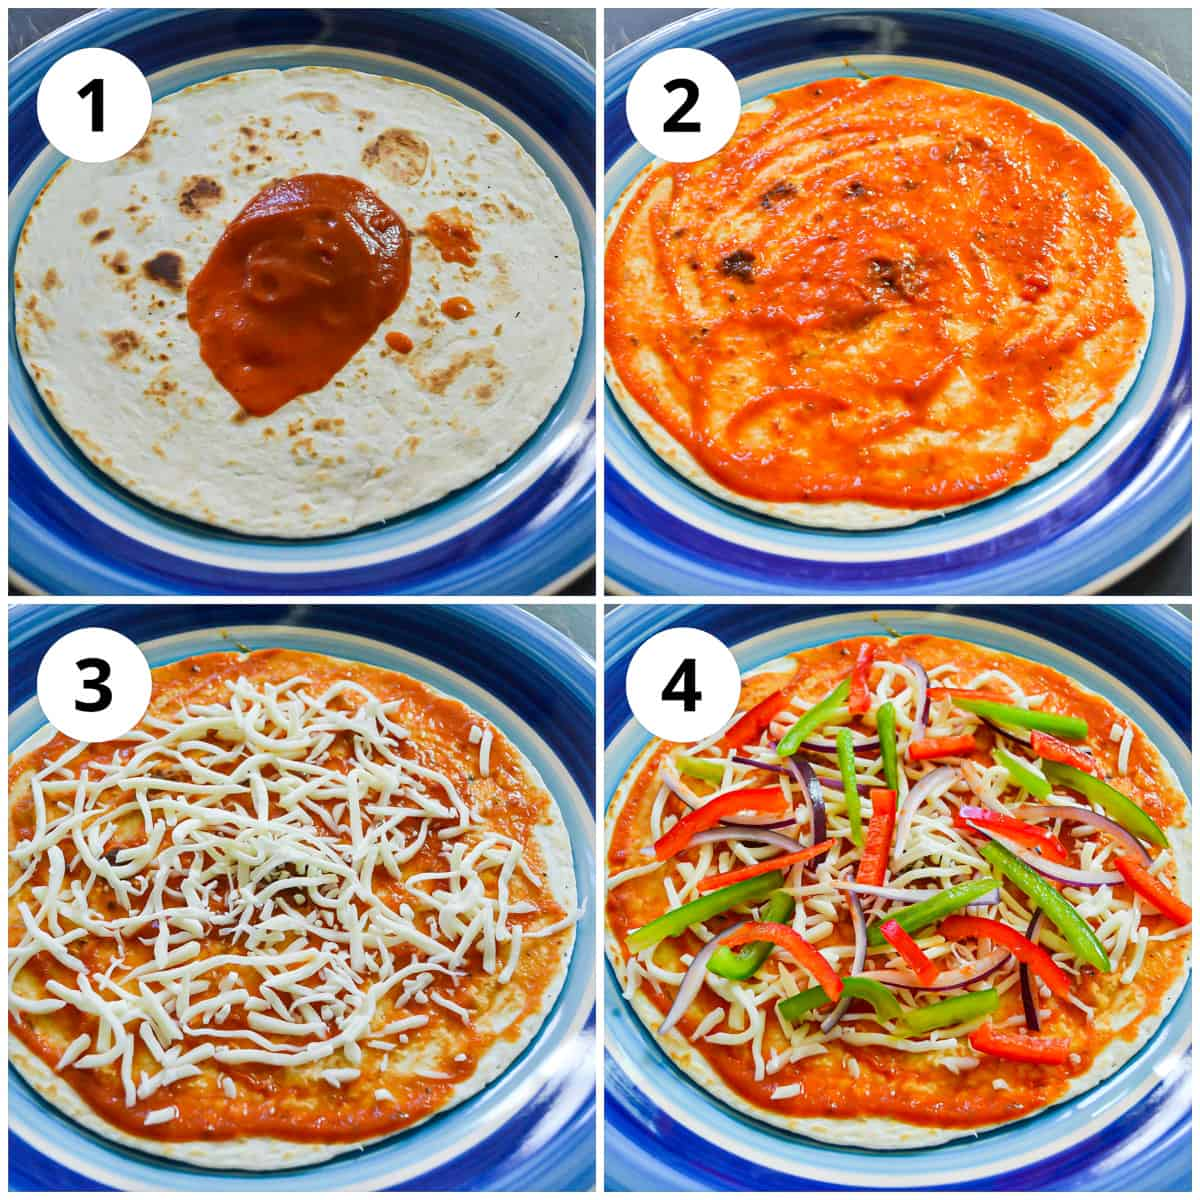 Four shots showing adding the sauce to the tortilla and topping with vegetables and cheese